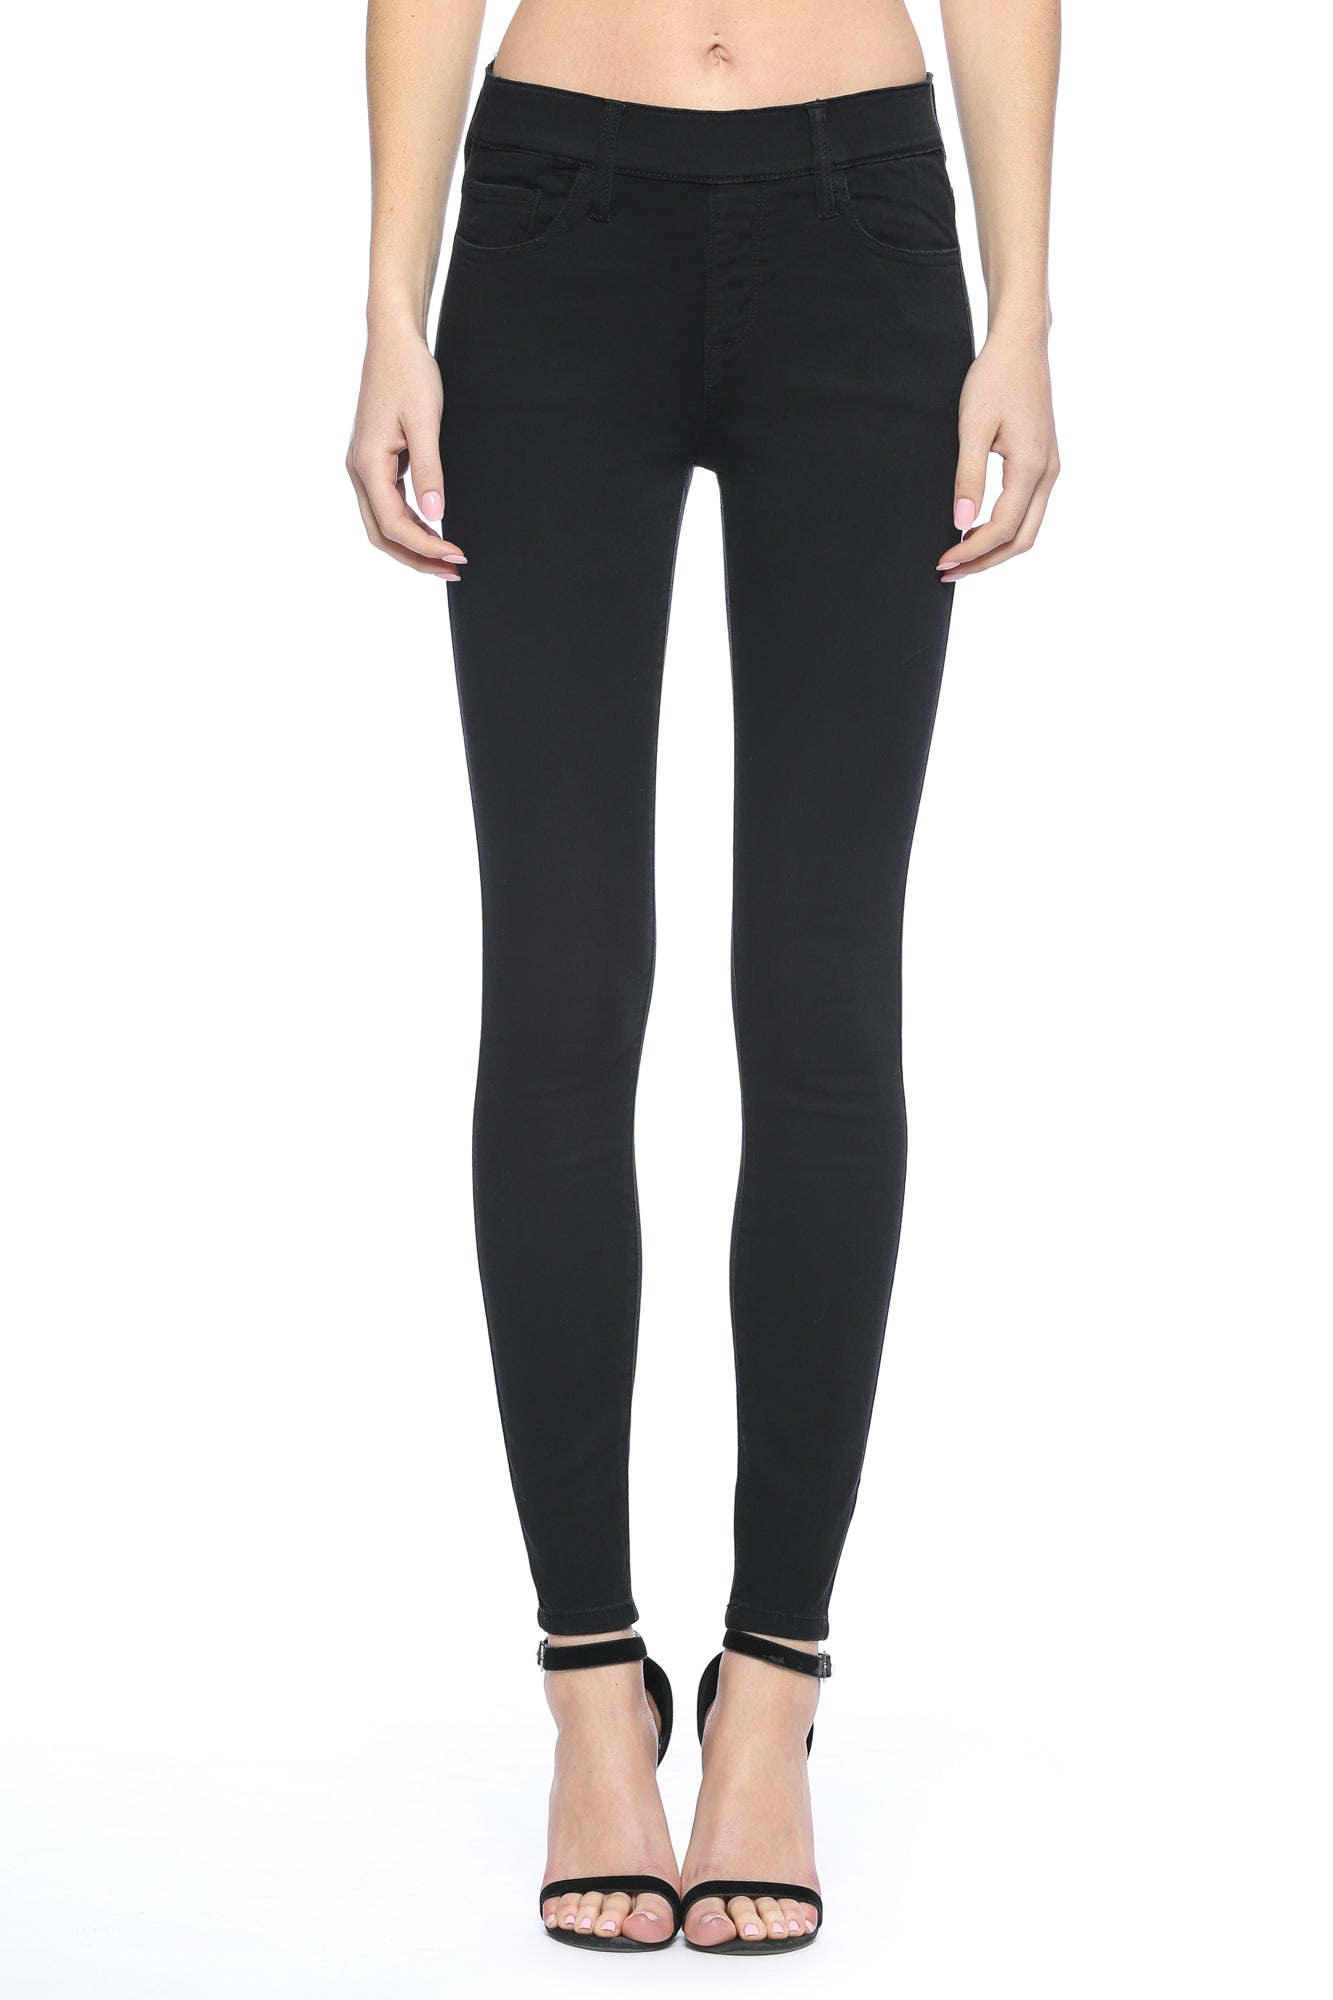 Mid Rise Pull On Black Crop Skinny Jeggings